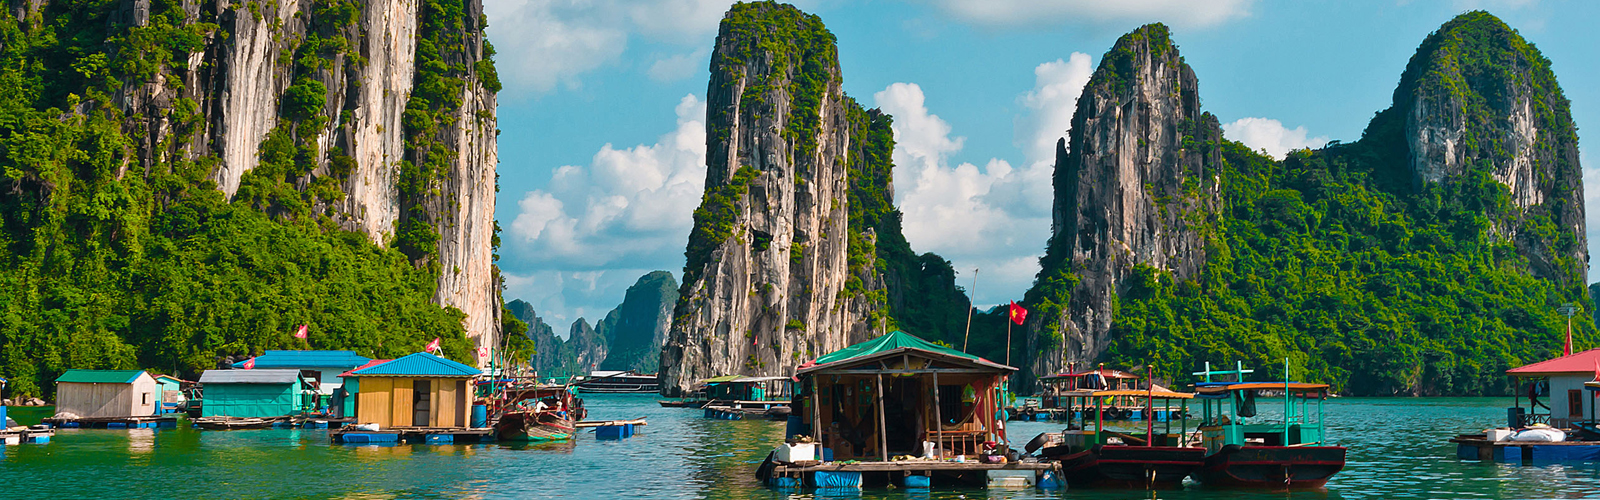 Hanoi & Ha Long Bay